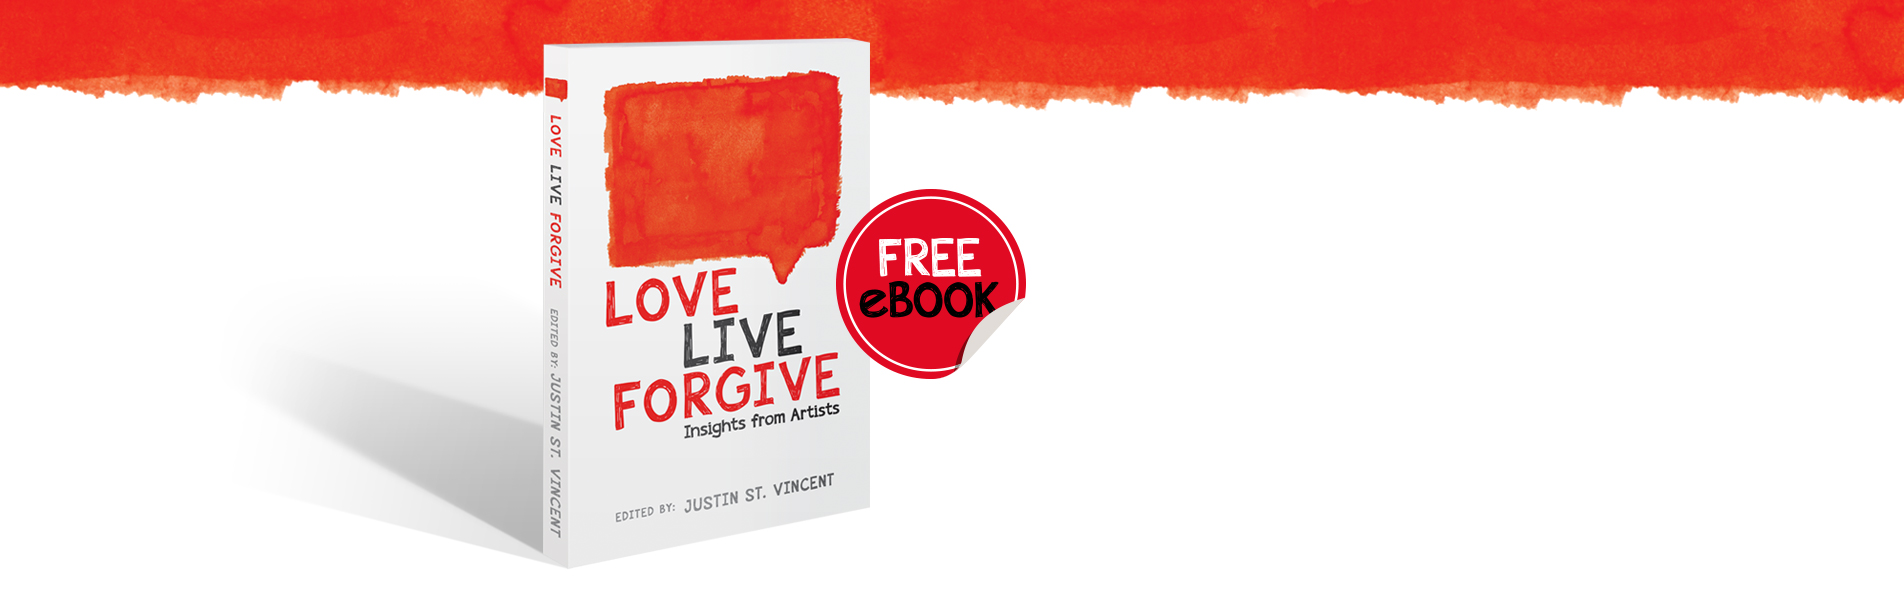 LOVE LIVE FORGIVE: Now Available for Download